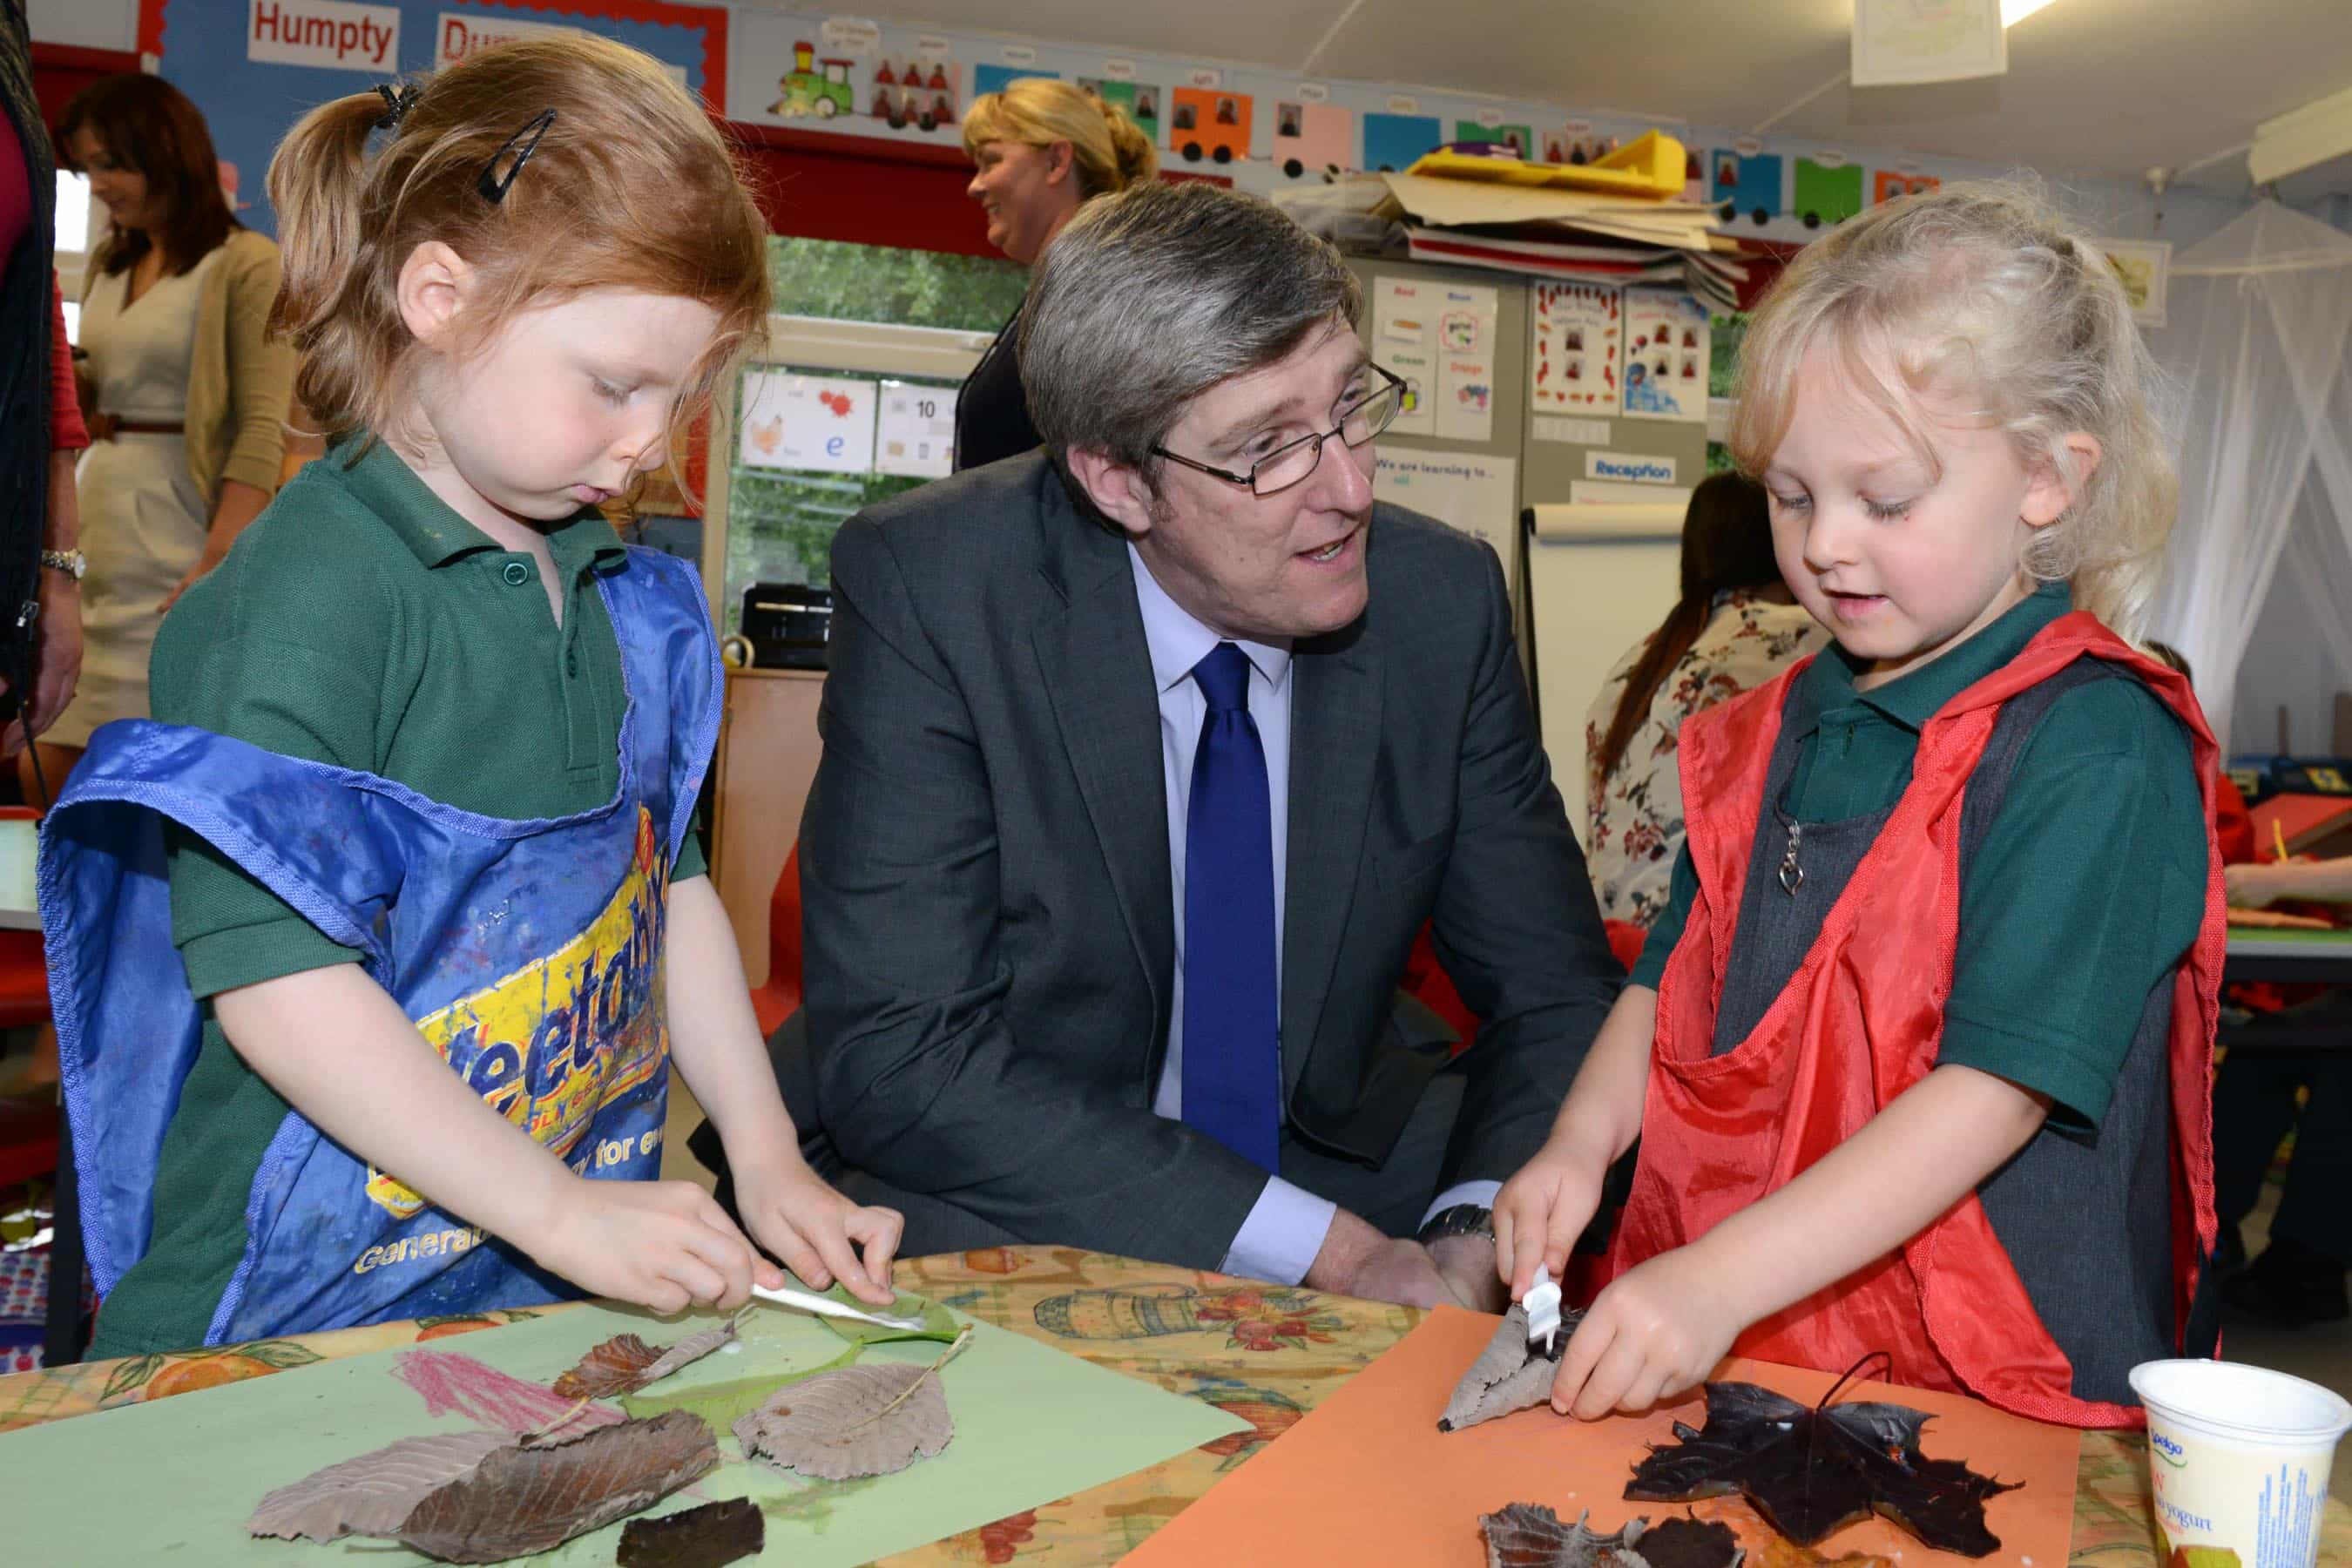 Education_Minister_John_ODowd_visited_Moneynick_and_Duneane_Primary_Schools_-_Photo-David_A_Scott-DAS_1344